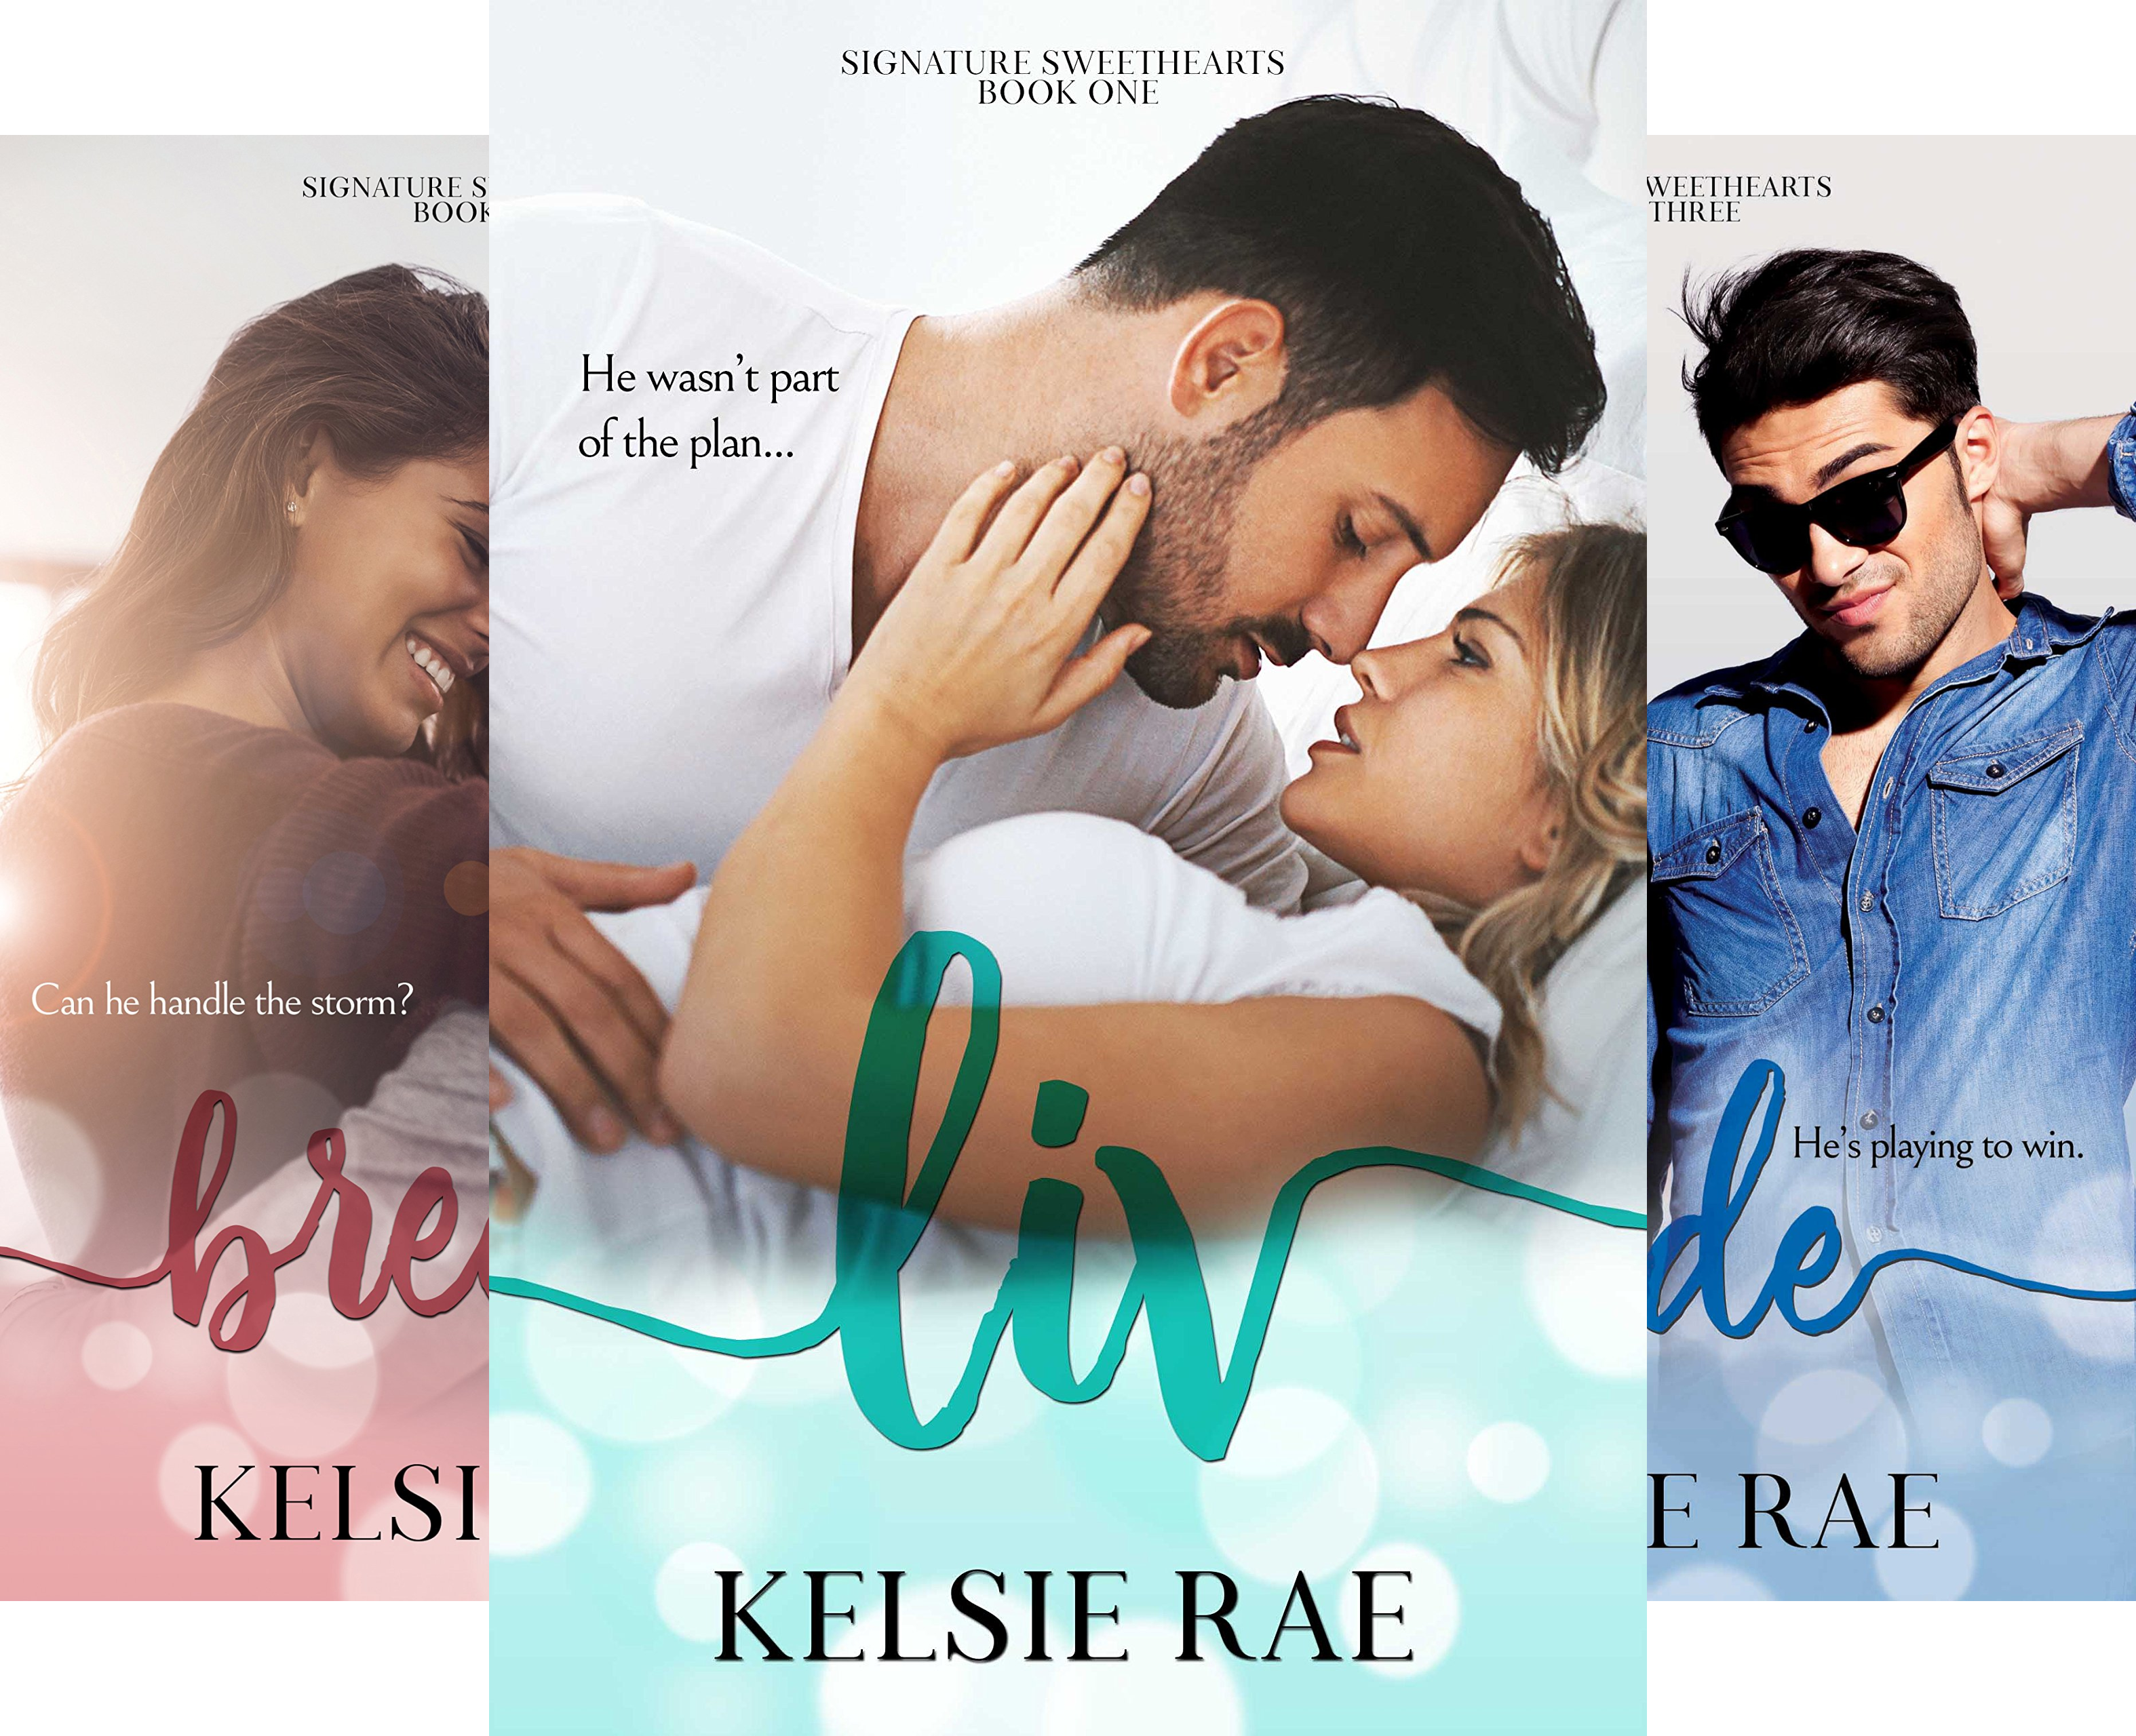 Signature Sweethearts (5 Book Series)